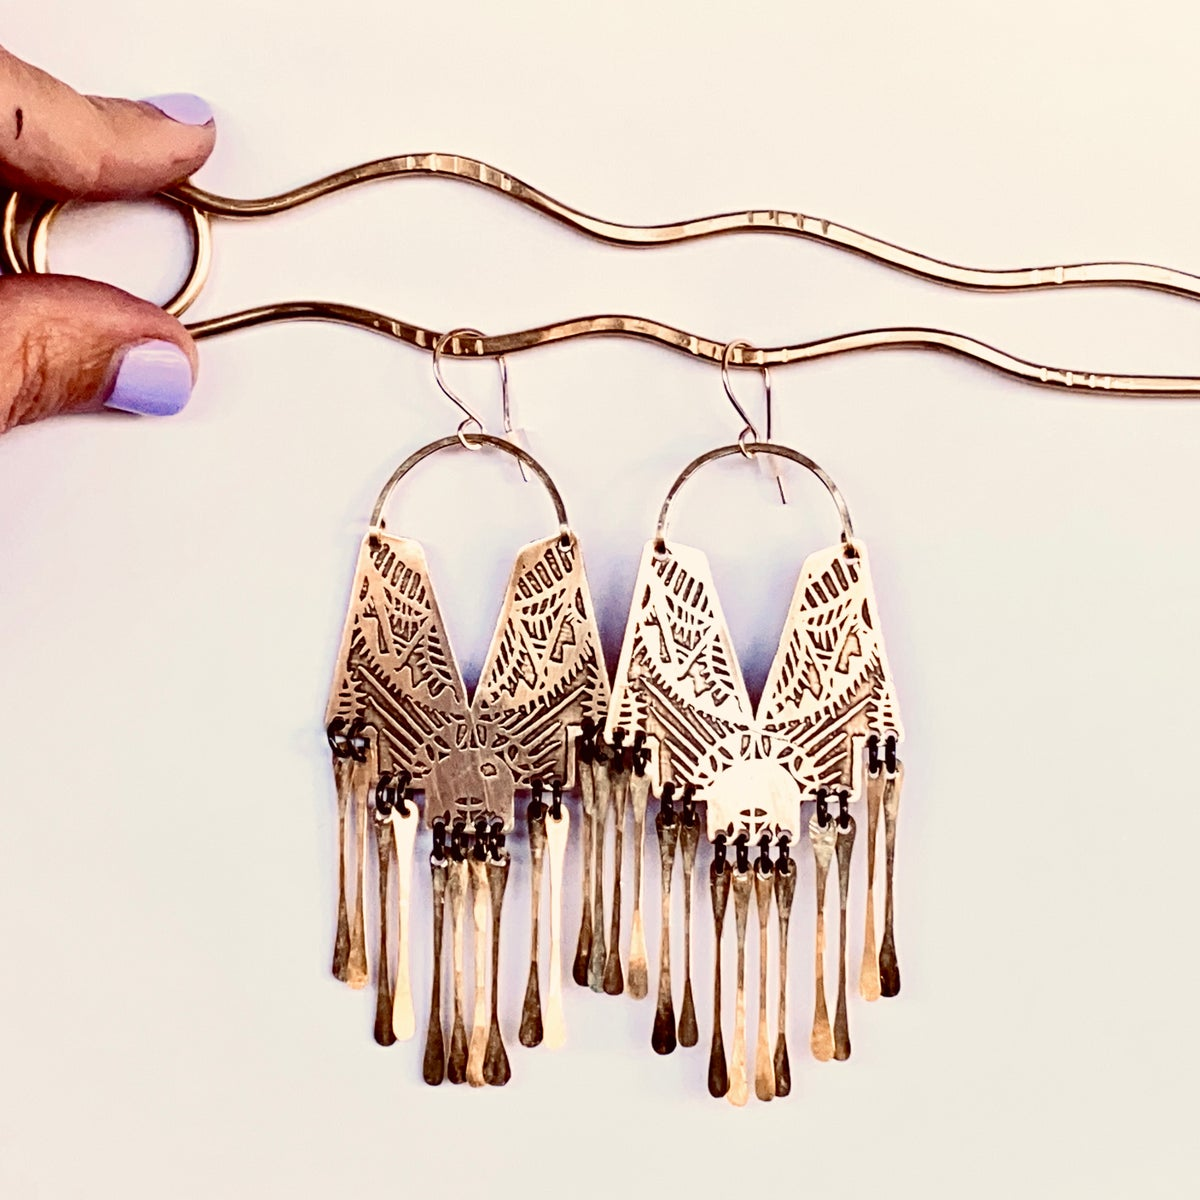 Image of Adorn Earrings w Brass Tassels